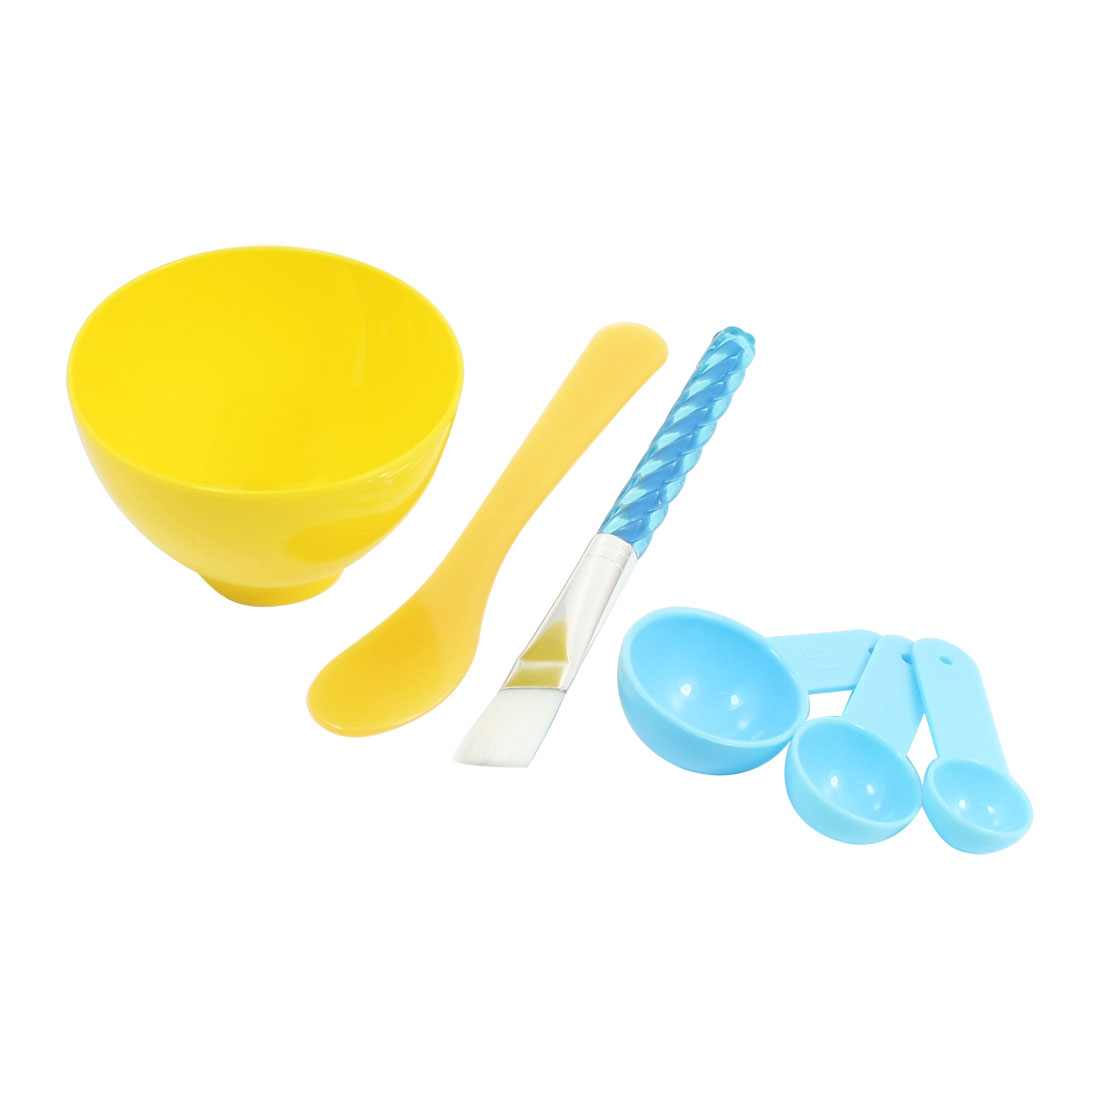 Lady 4 in 1 Facial Beauty Skin Care Make Up Comestic Plastic Mask Mixing Bowl Brush Gauge Spoon Yellow Set